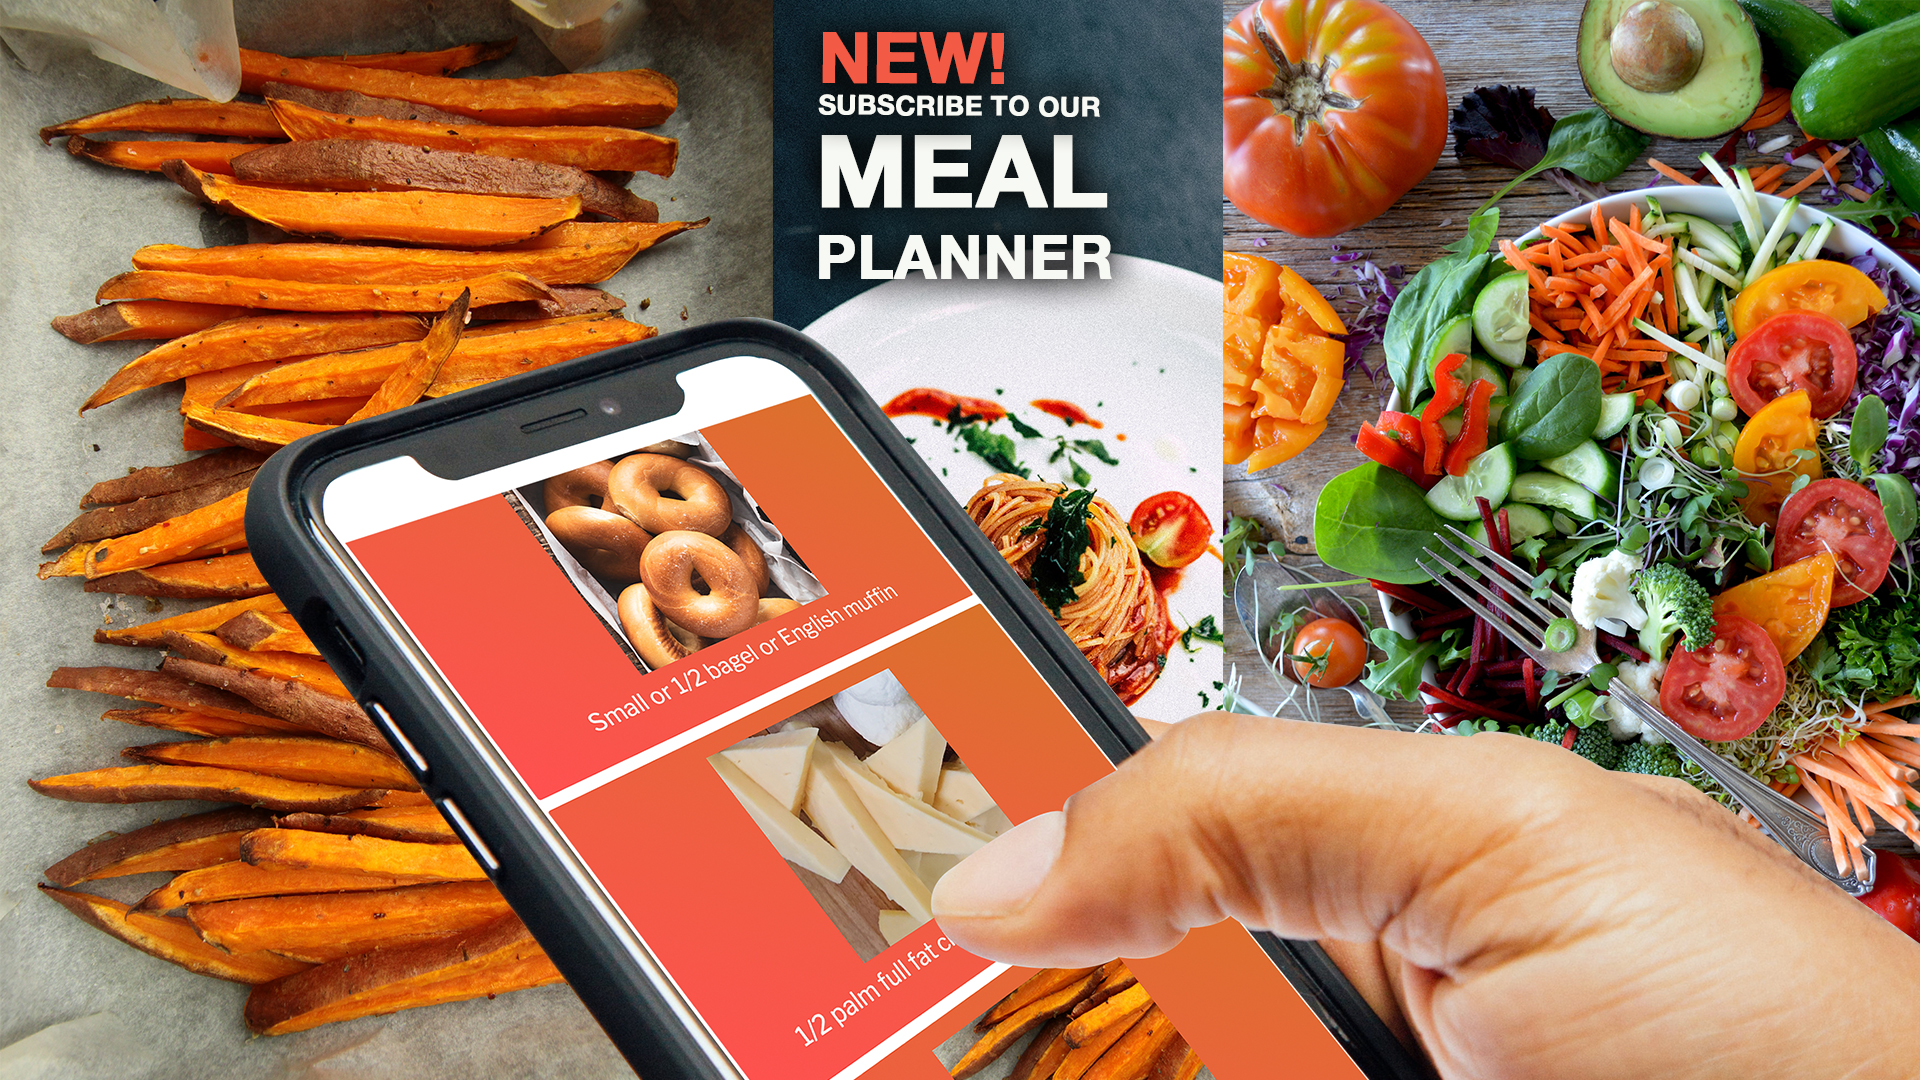 NEW! The HomeBodyFit Meal Planner